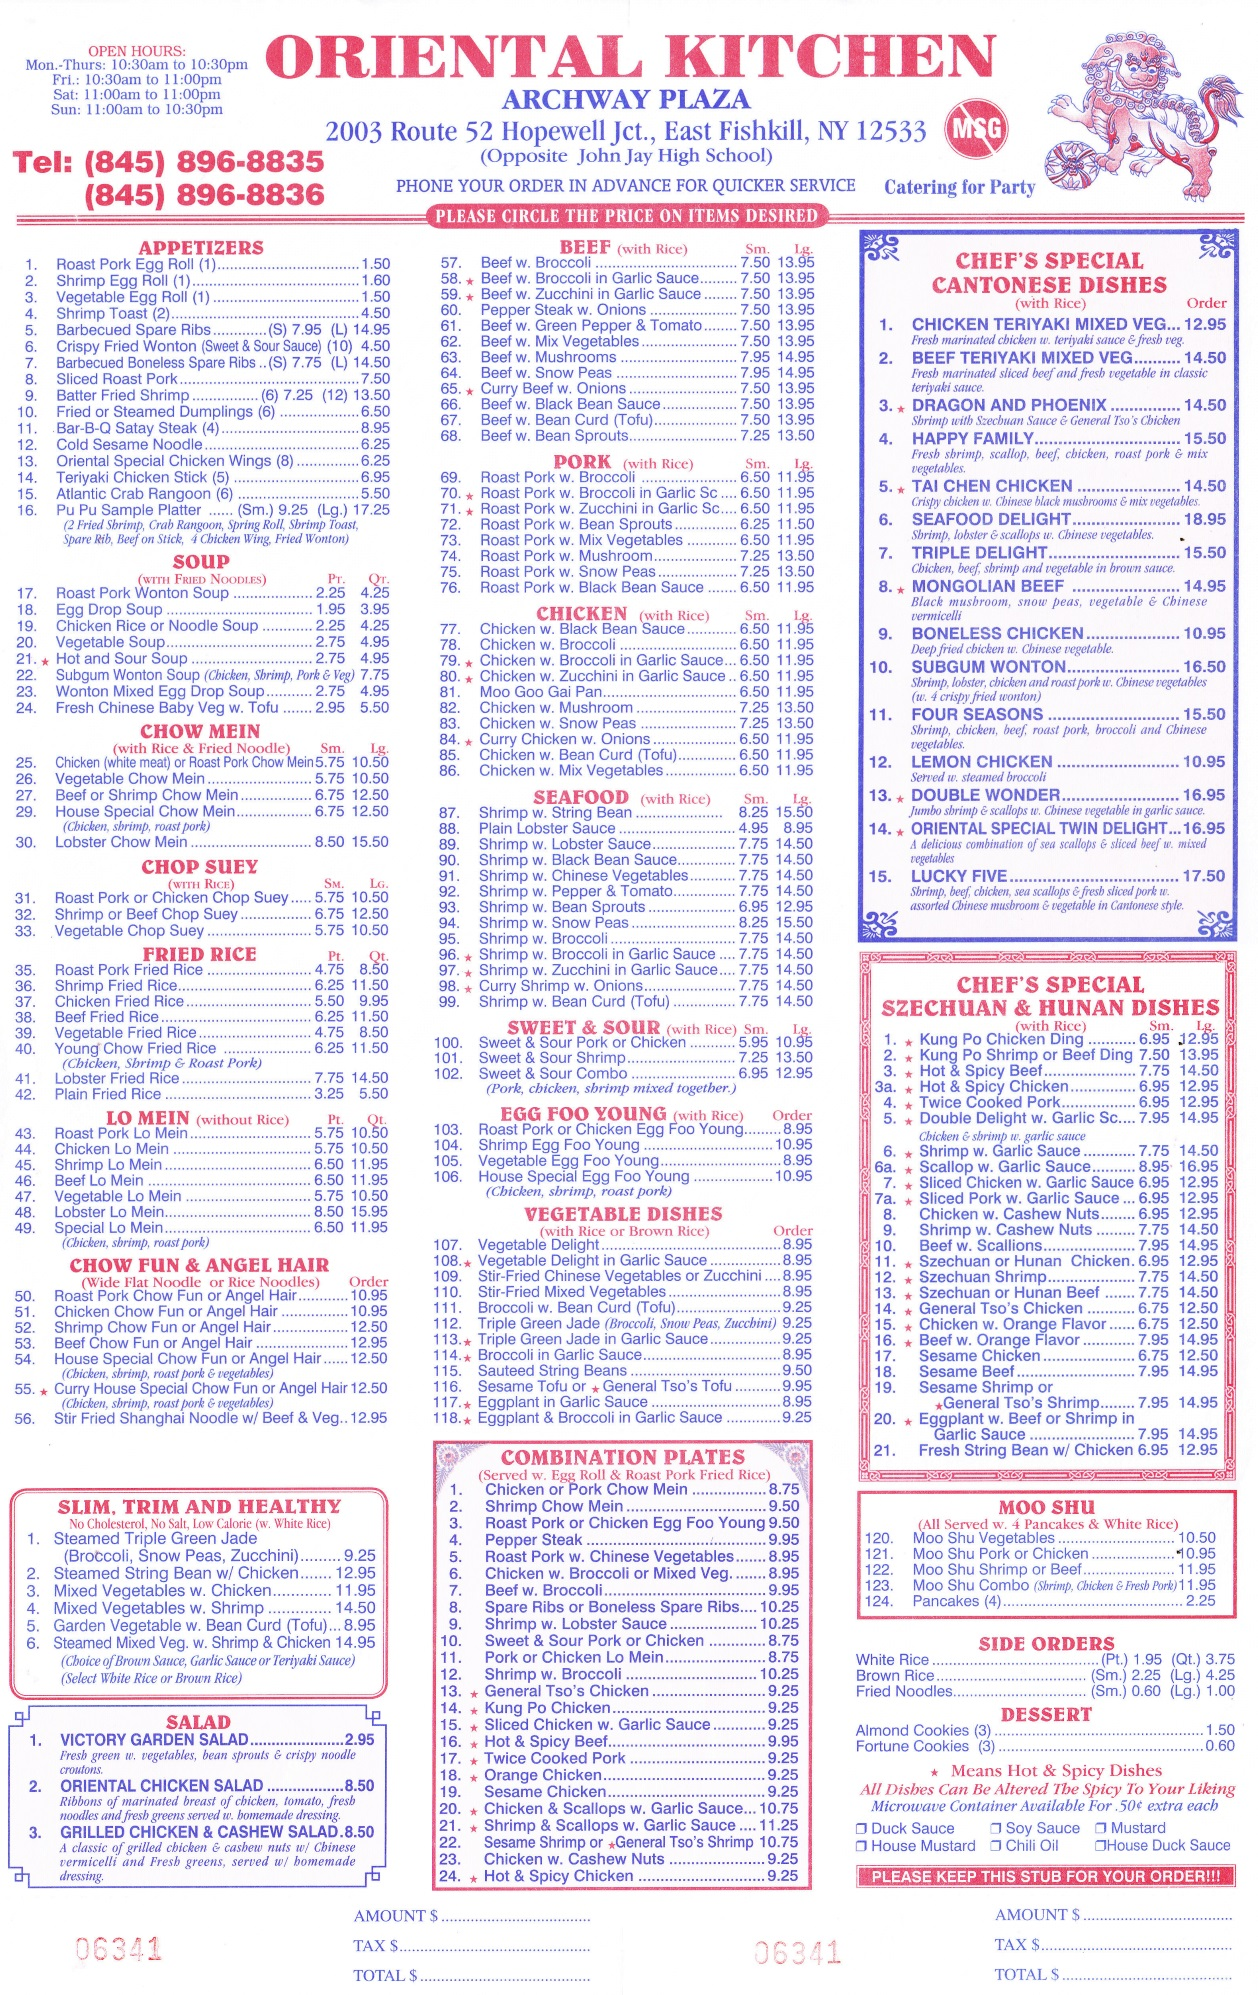 Whereisthemenu.net | Oriental Kitchen - Hopewell Junction, NY 12533